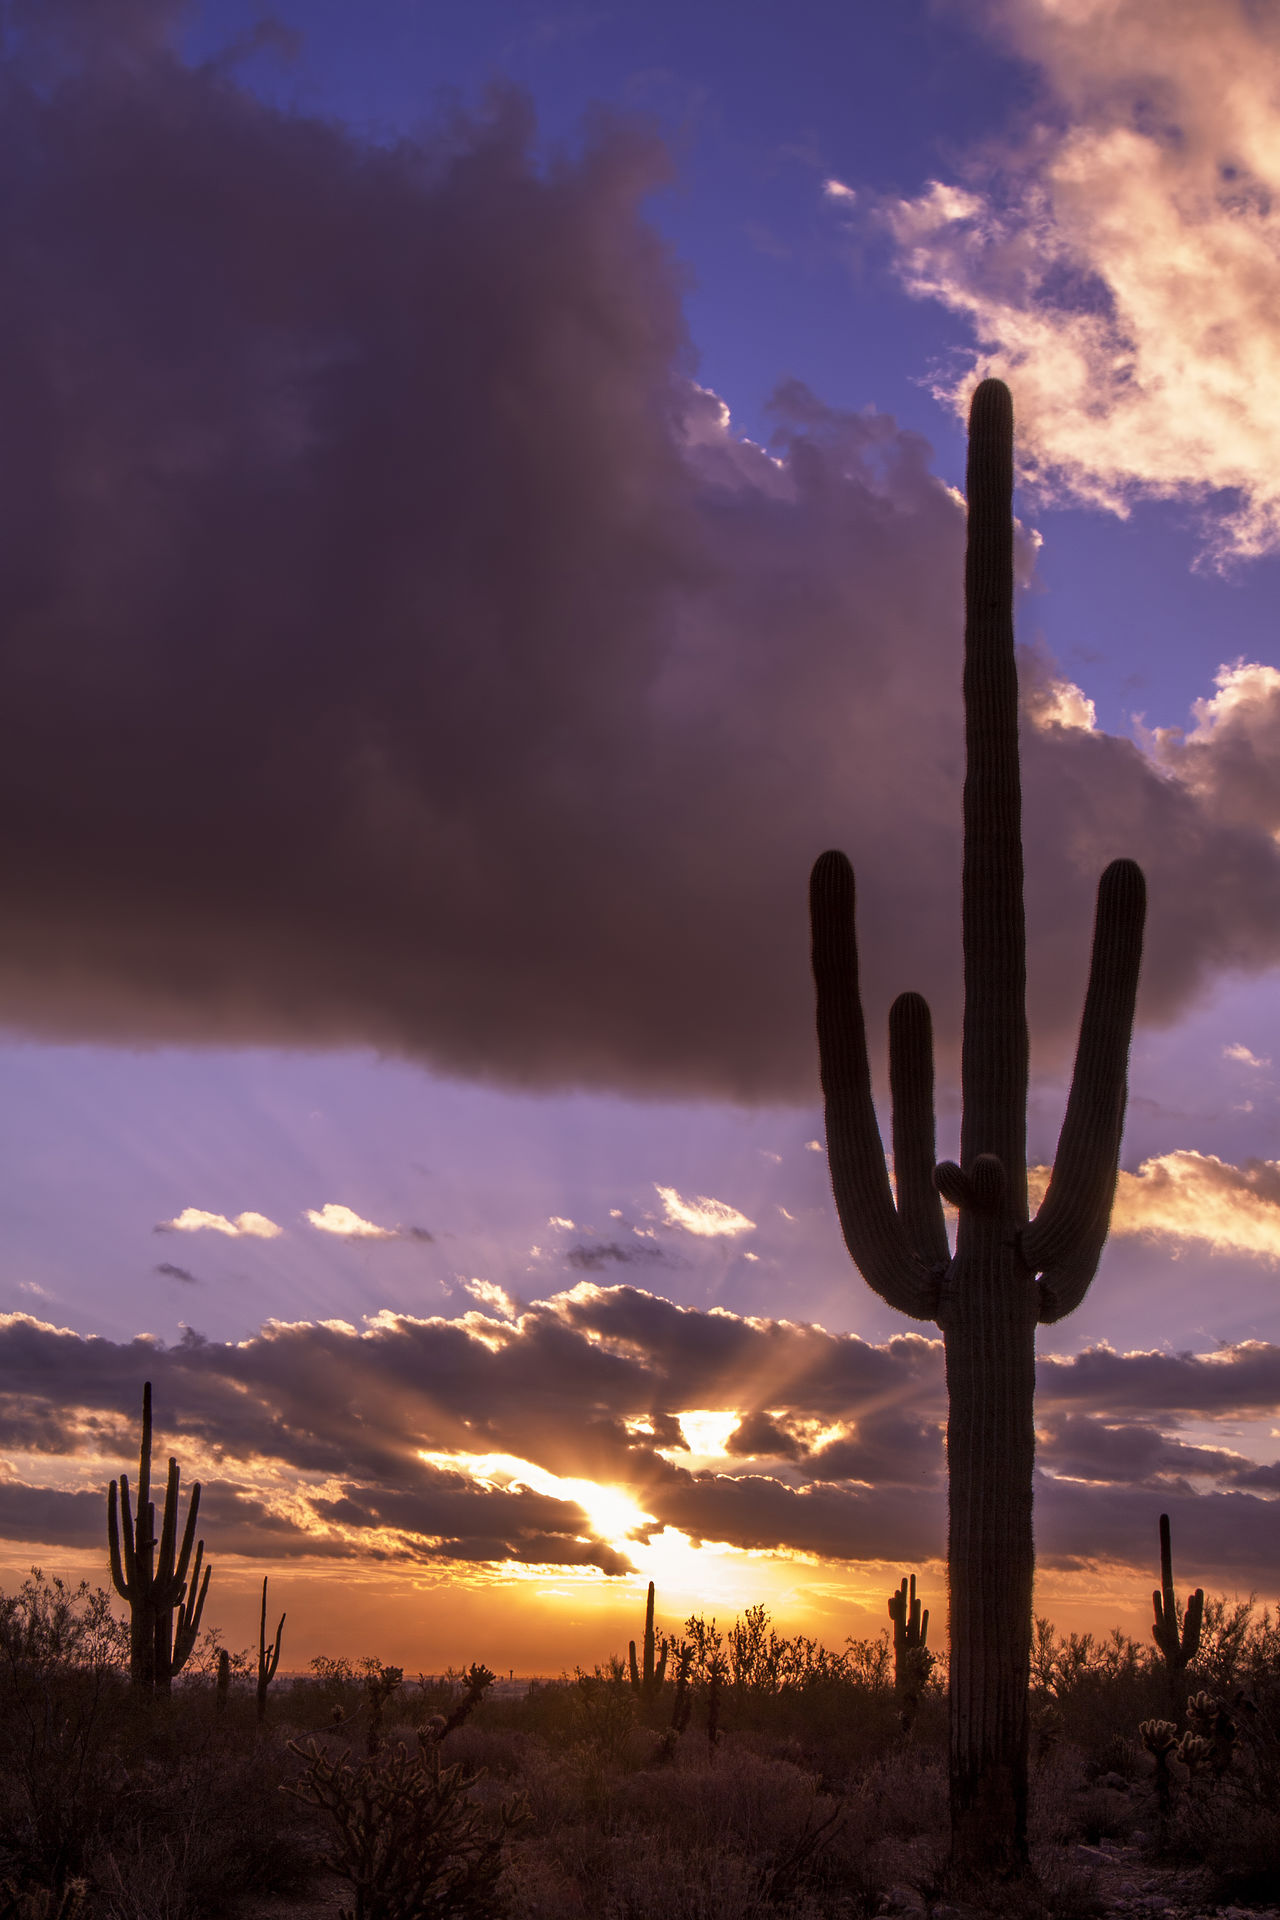 Saguaro Cactus silhouetted in the sunrise. American Southwest Arizona Beautiful Cactus Desert Deserts Around The World Dramatic Landscape Jtbaskinphoto Landscape Natural Beauty Nature Pheonix  Saguaro Saguaro Cactus Sun